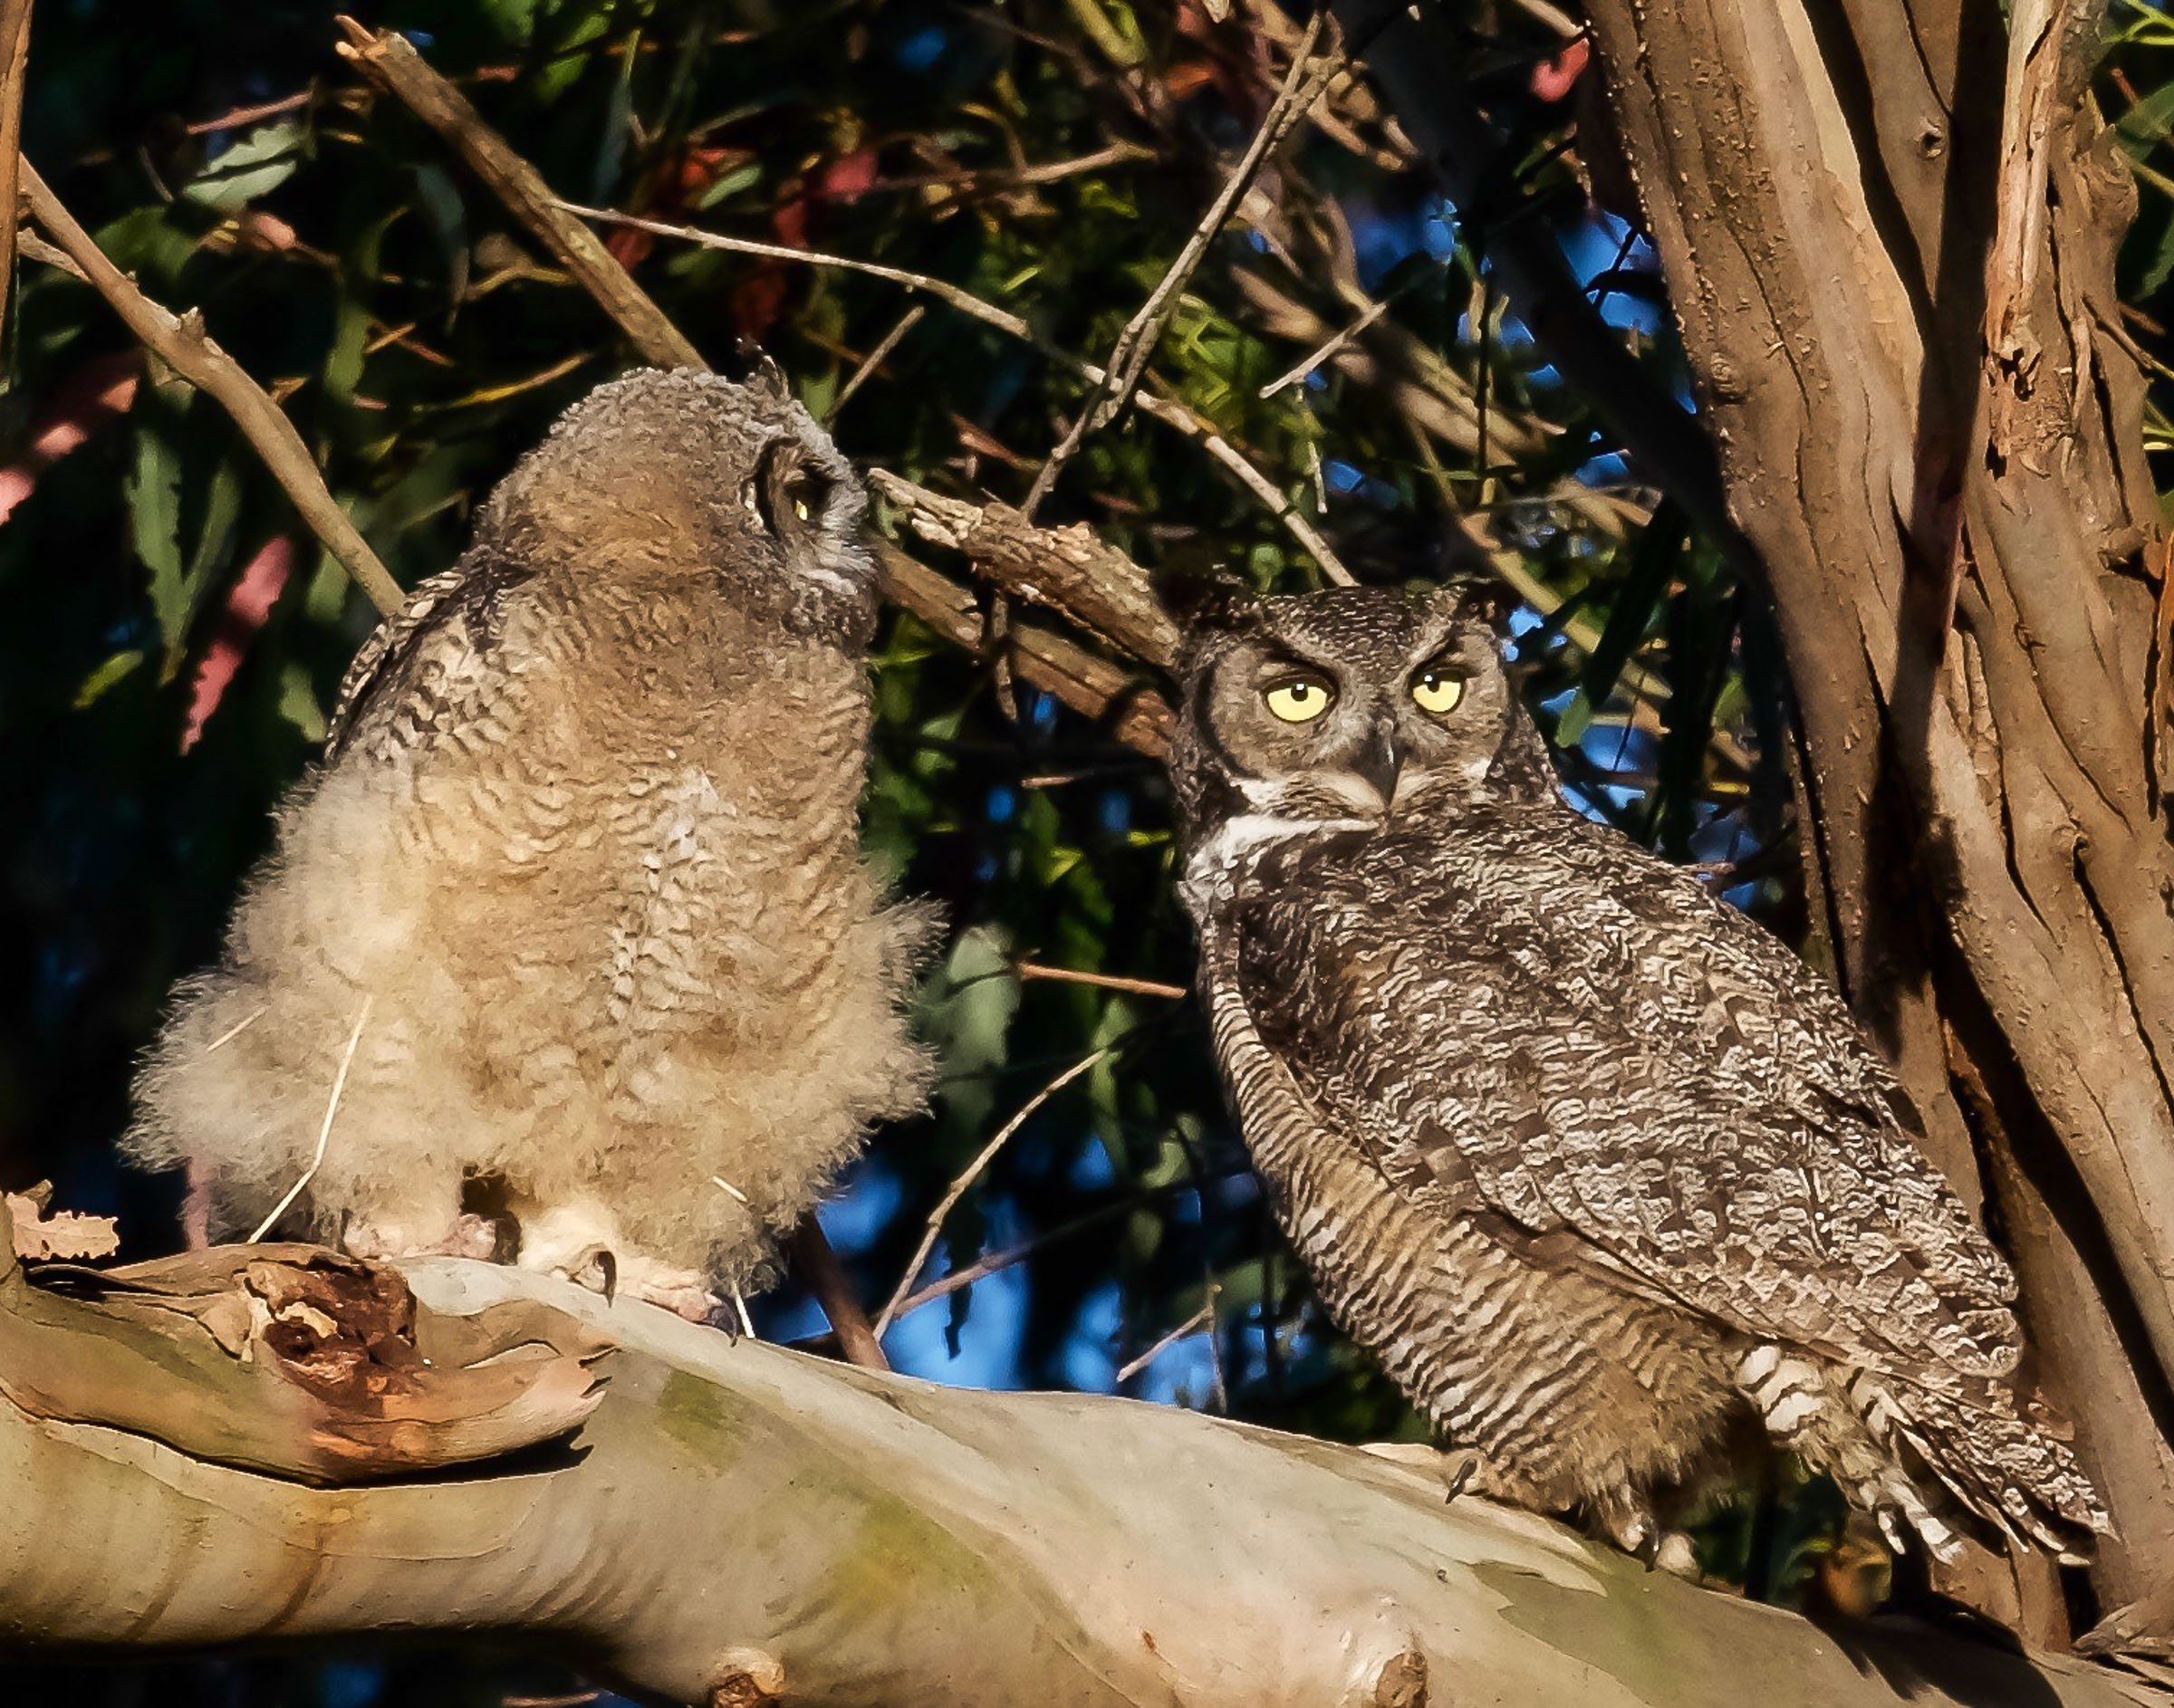 mother-owl-and-owlet-on-branch-grooming-1.jpg